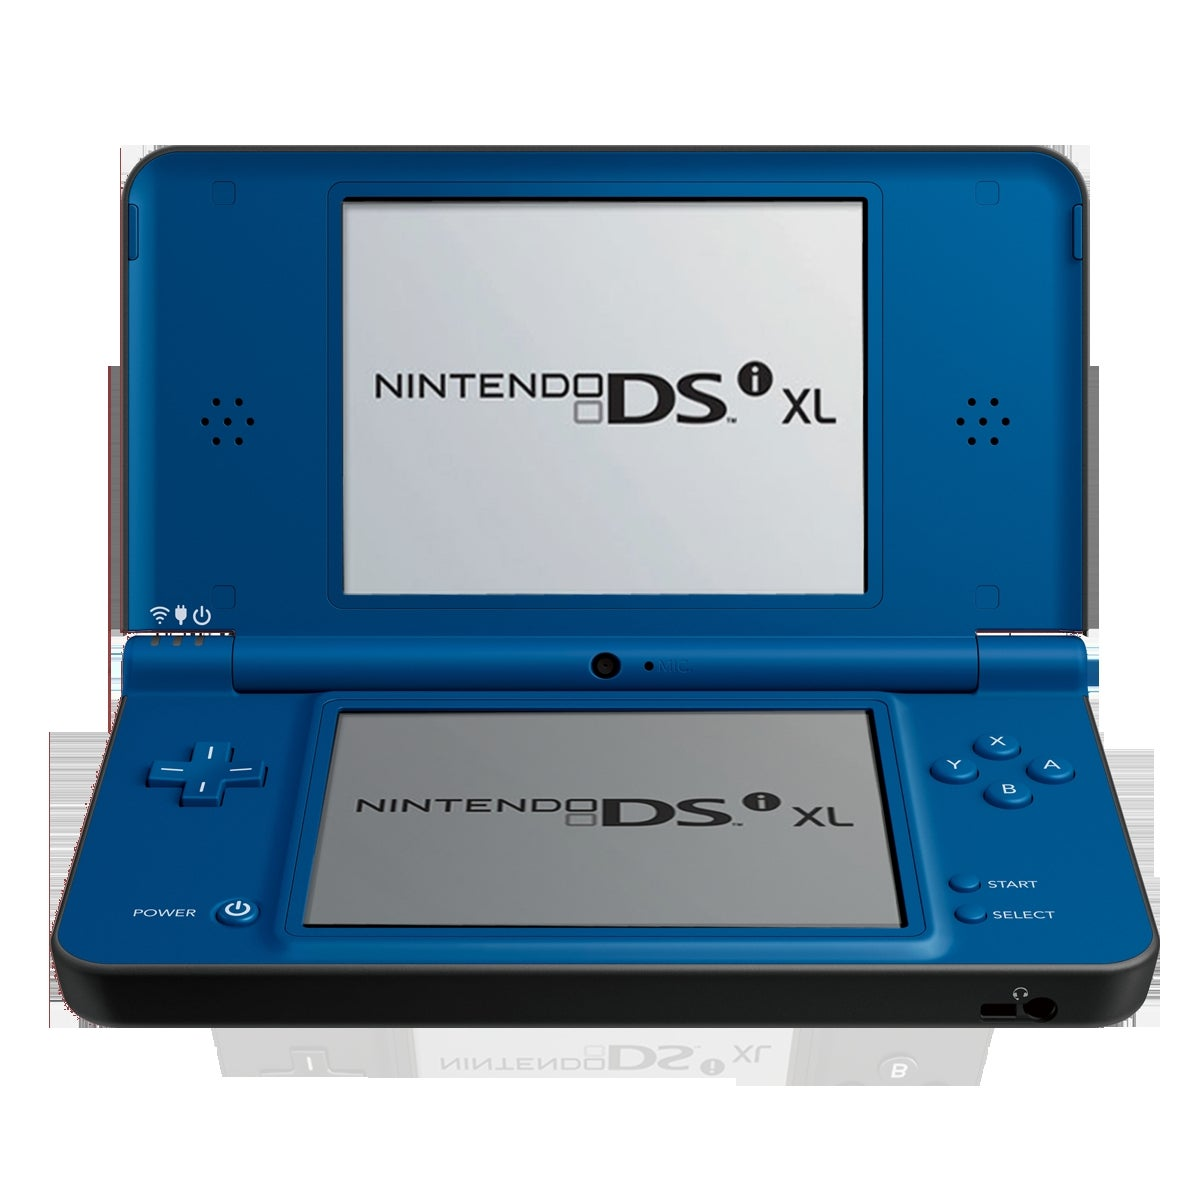 Nintendo DSi XL Handheld Video Game System Midnight Blue (Refurbished)